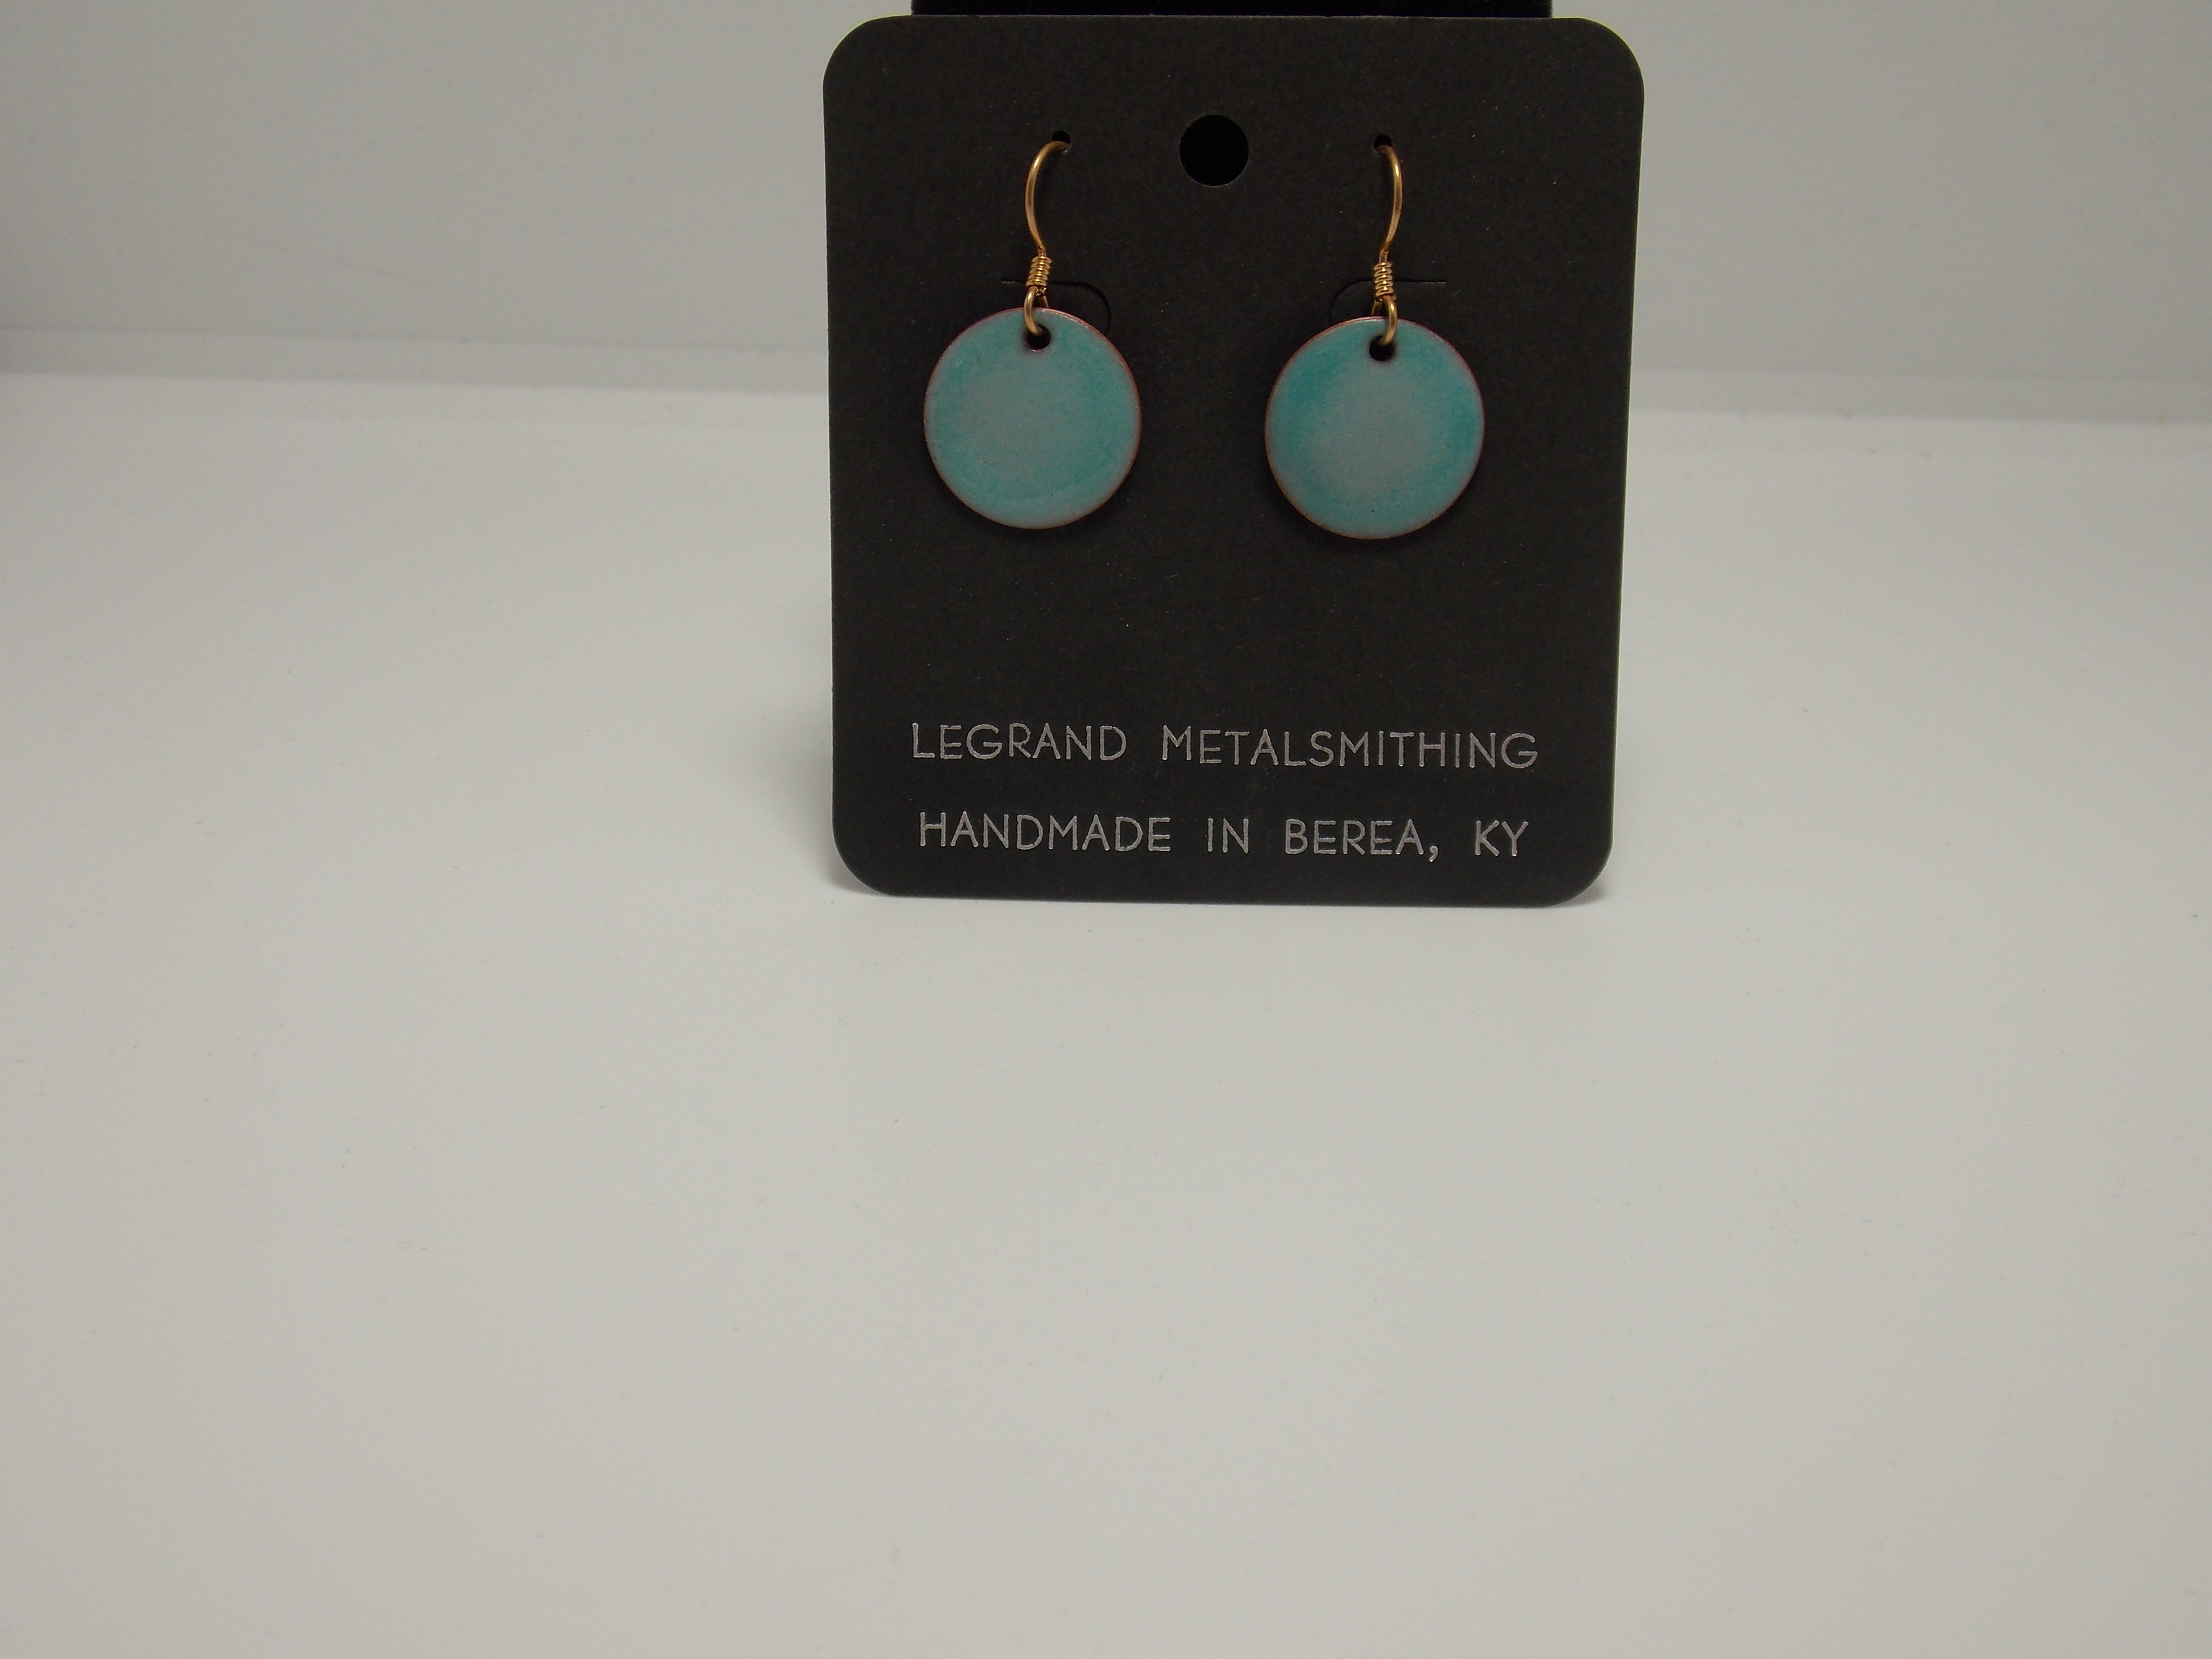 Enamel Earrings by Gerald Price